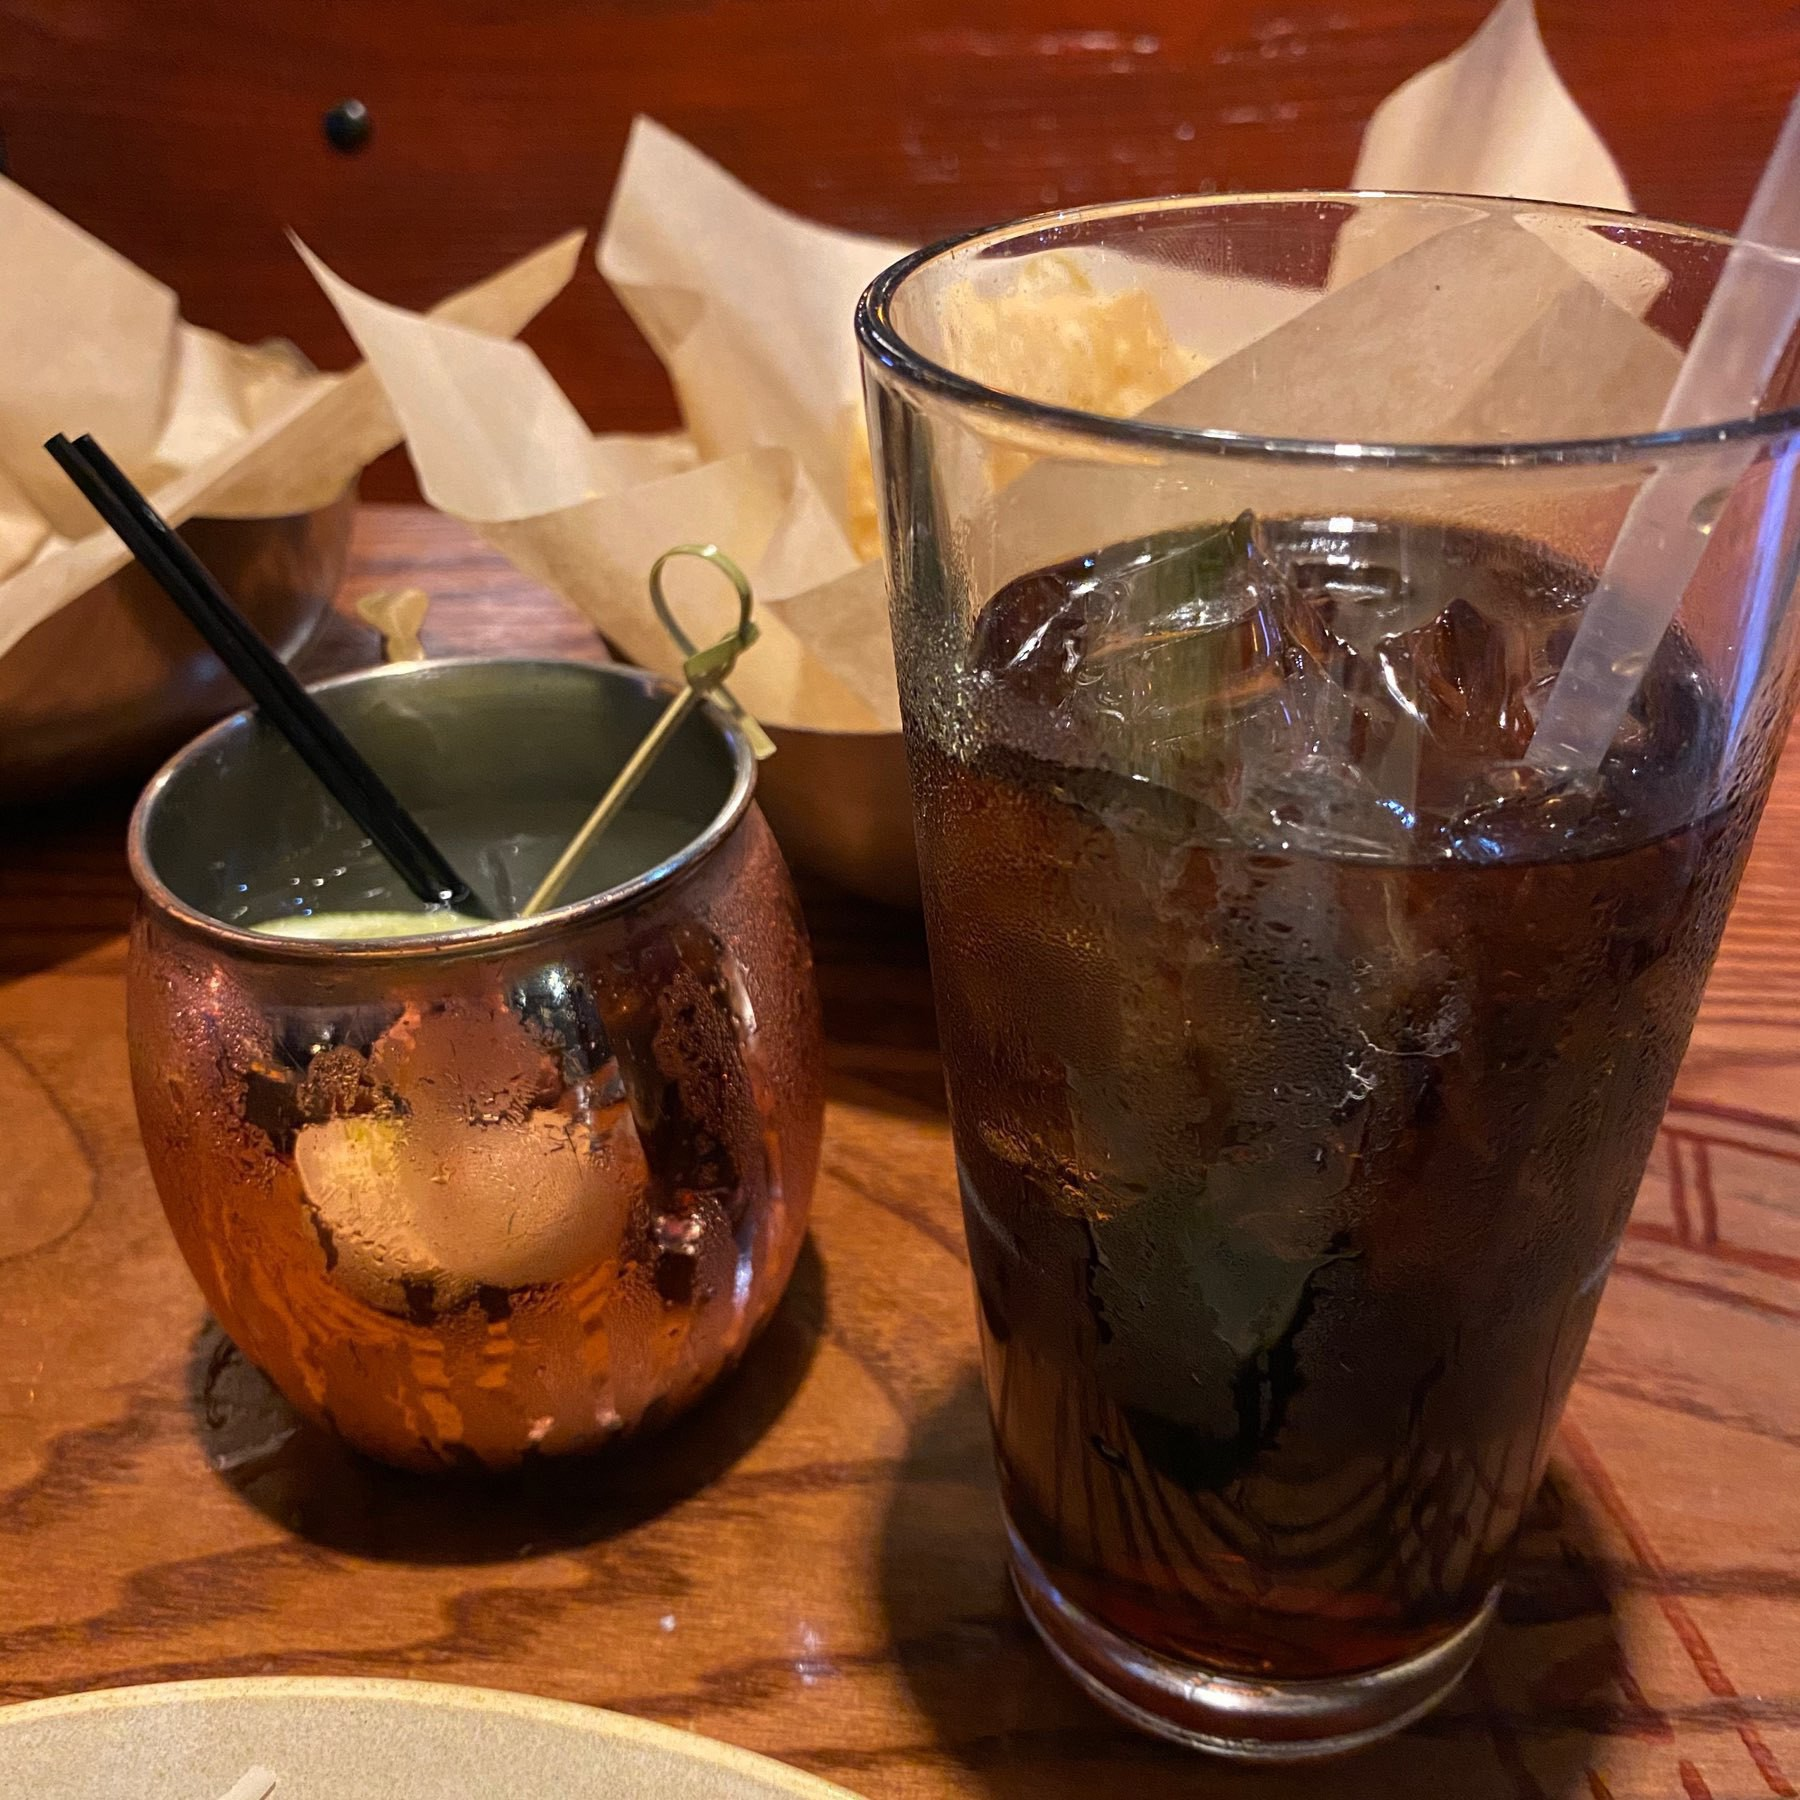 An alcoholic drink next to a Diet Coke.